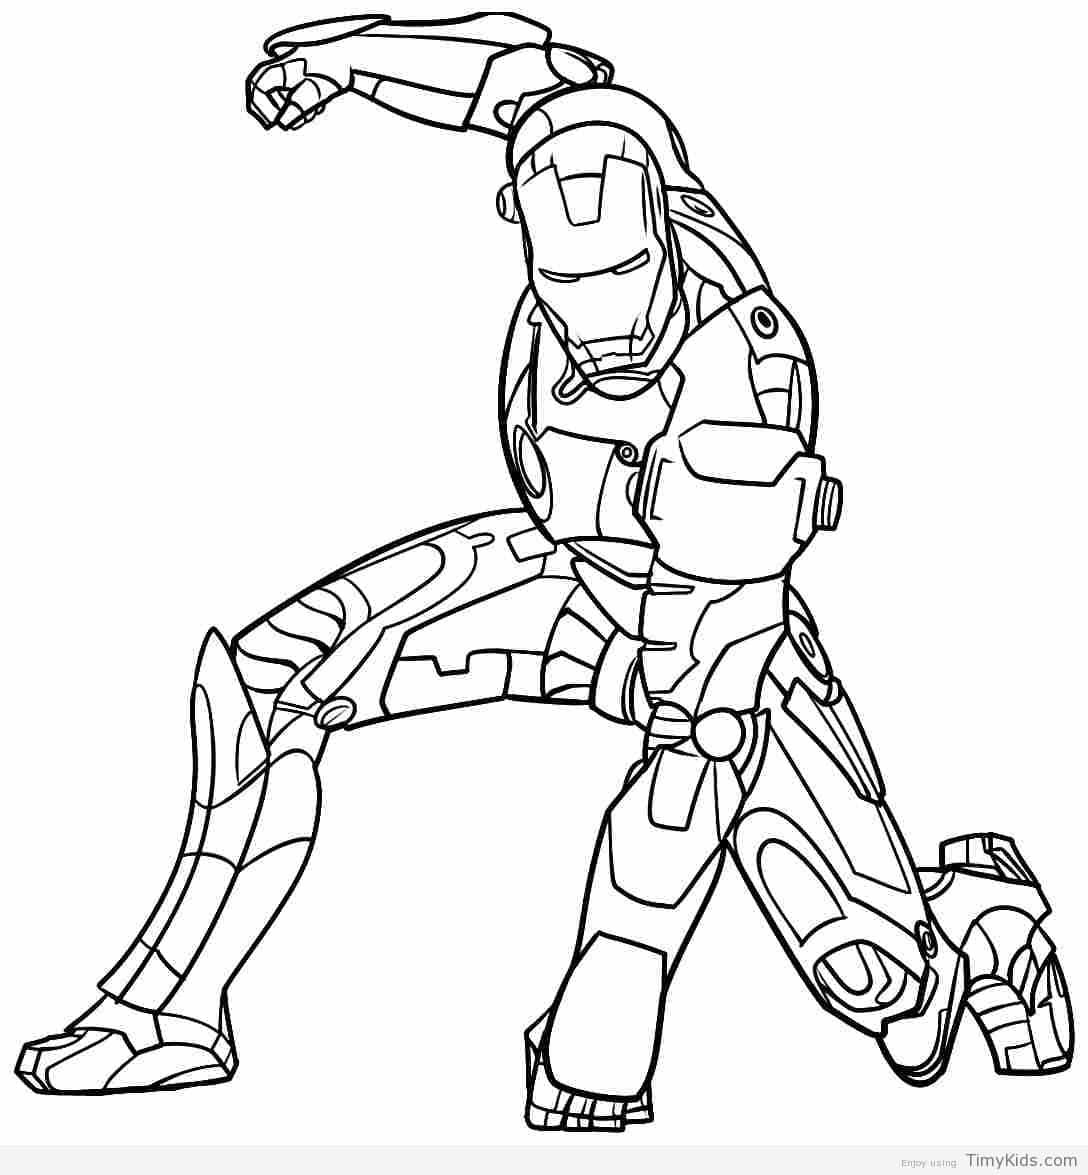 iron man pictures for colouring free printable iron man coloring pages for kids cool2bkids colouring iron for pictures man